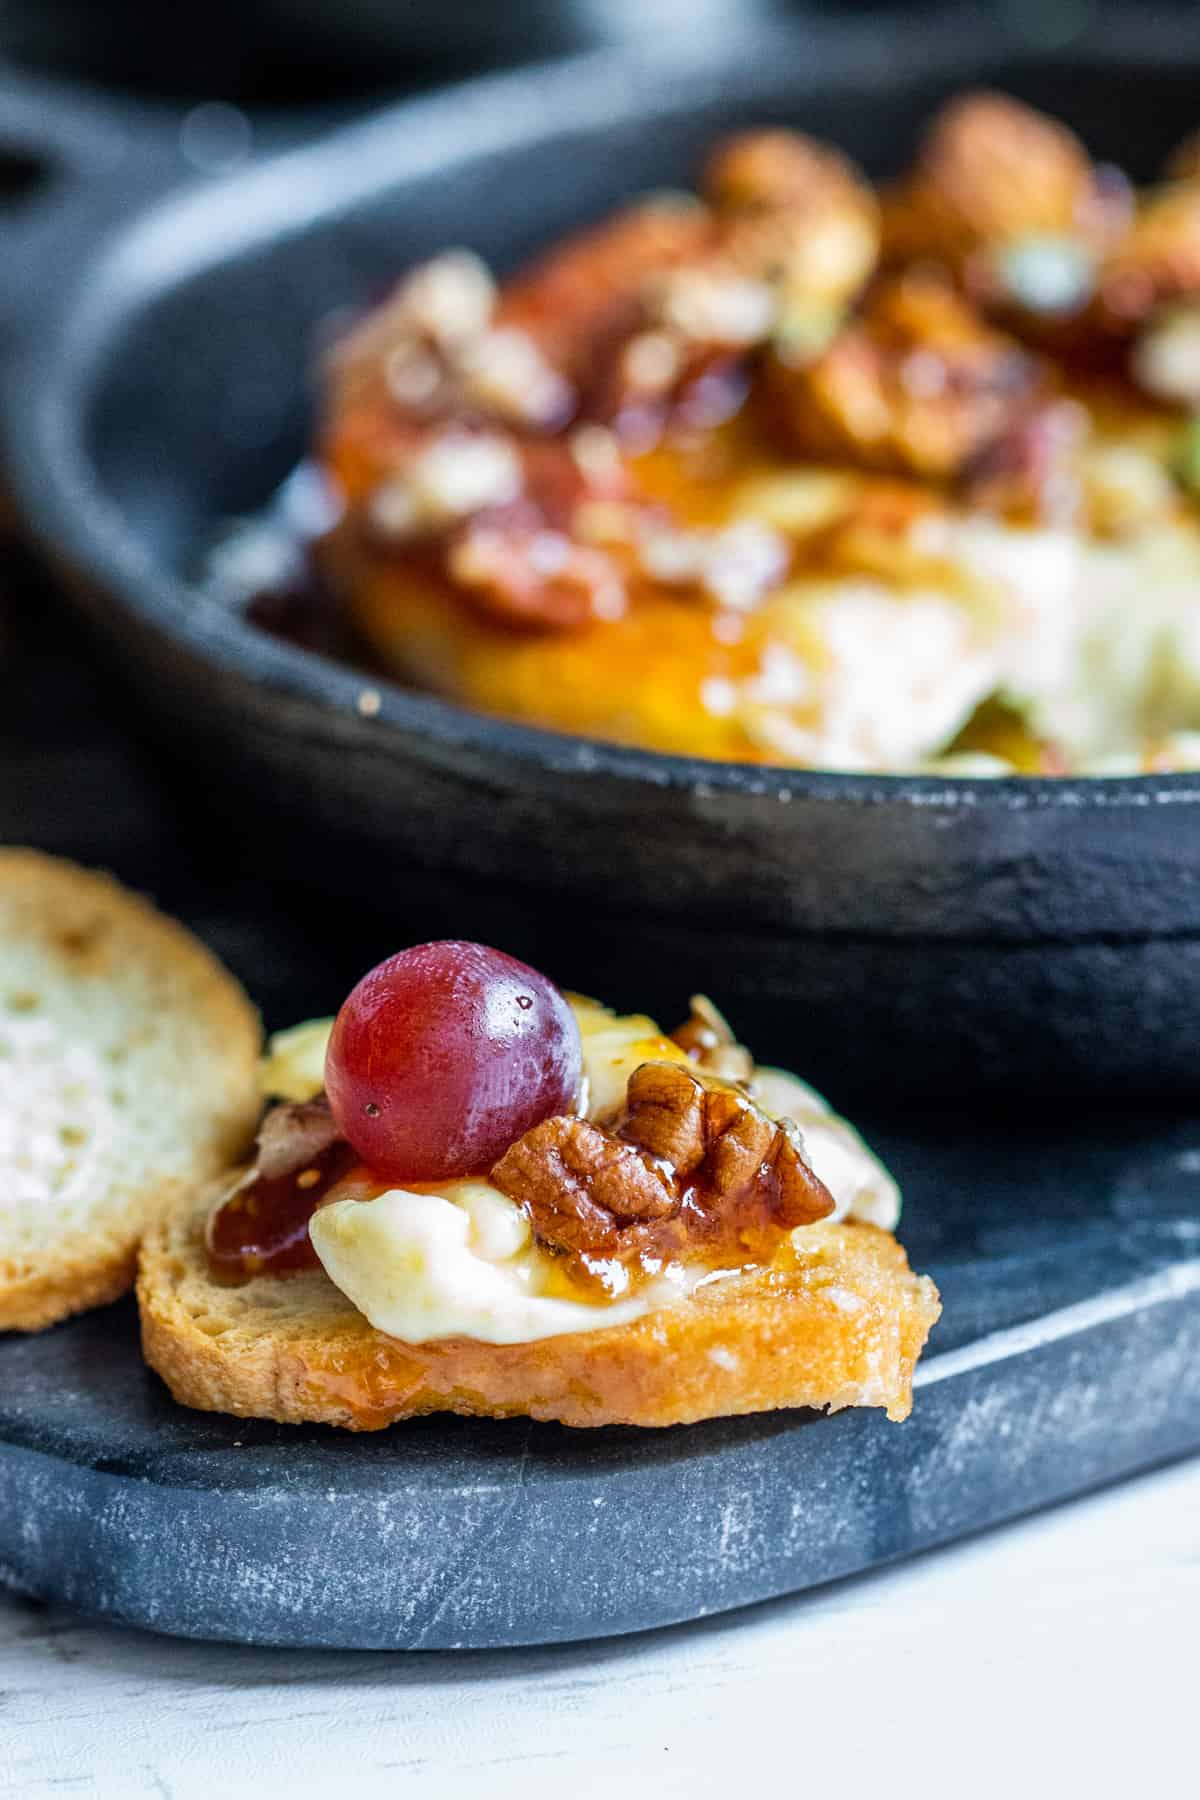 Cheese on bread with grape on top.